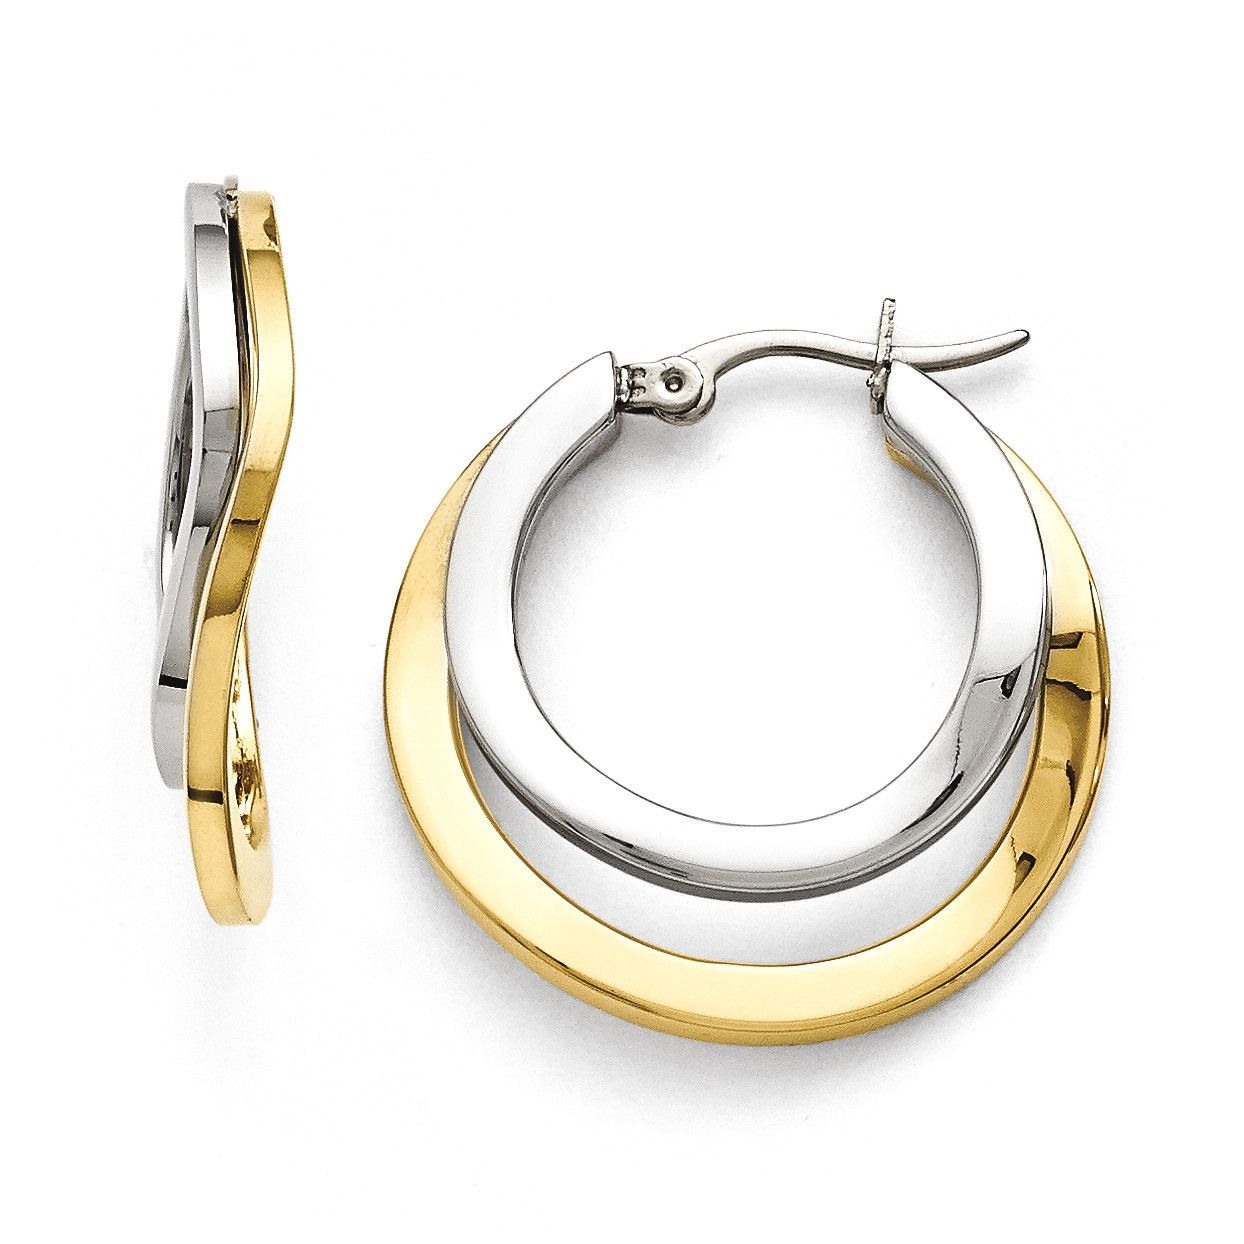 Stainless Steel Polished Yellow IP-plated 30mm Hoop Earrings SRE822